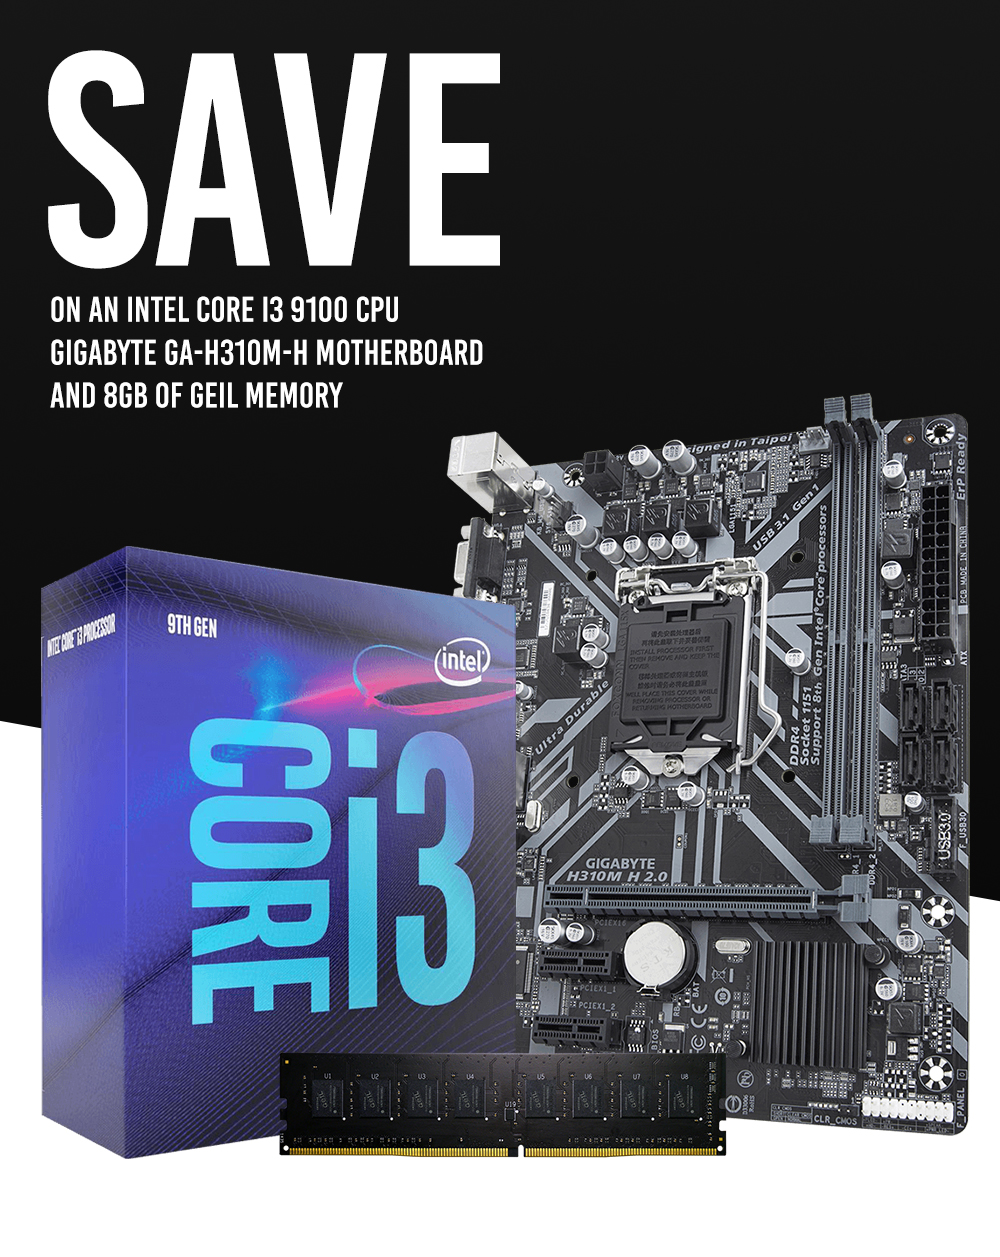 A large marketing image providing additional information about the product Intel 9th Gen H310 Super Starter Bundle - Additional alt info not provided